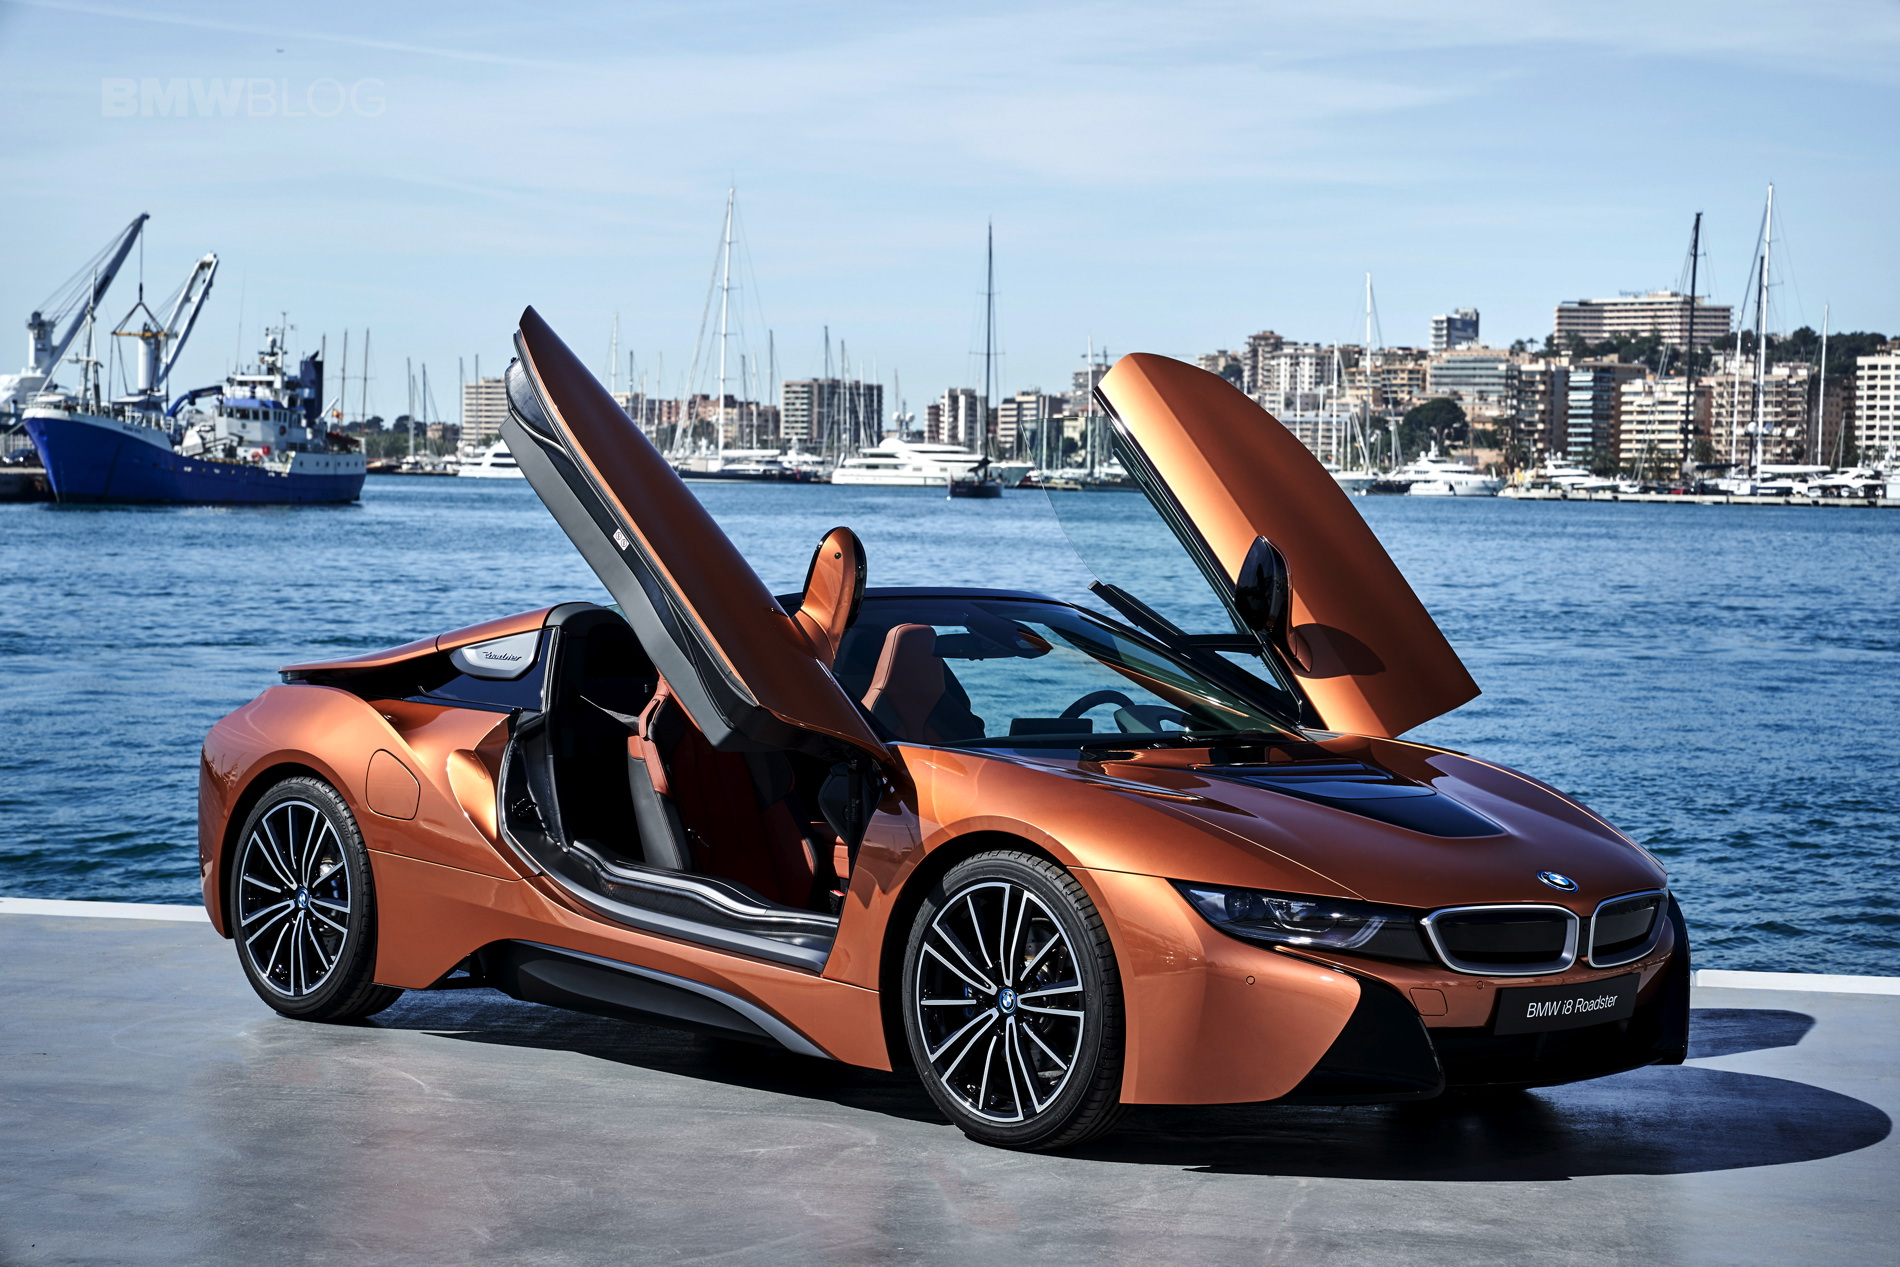 2018 BMW i8 Roadster test drive 129